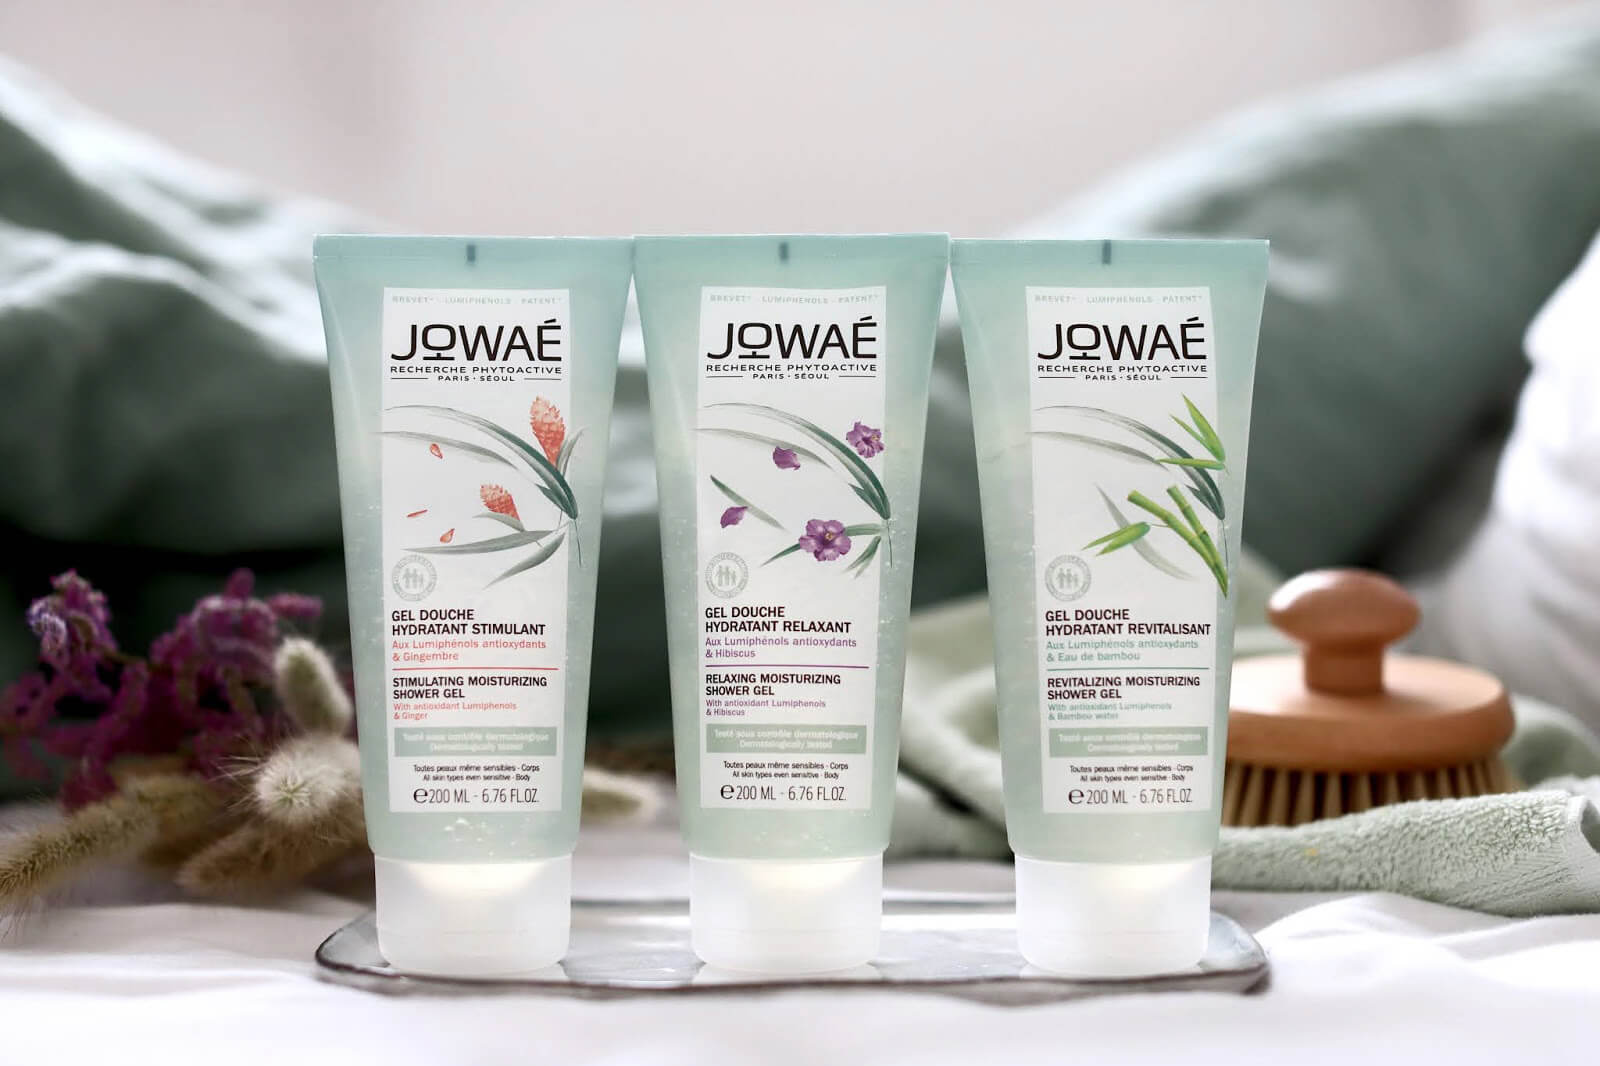 Jowae Gel Douche test